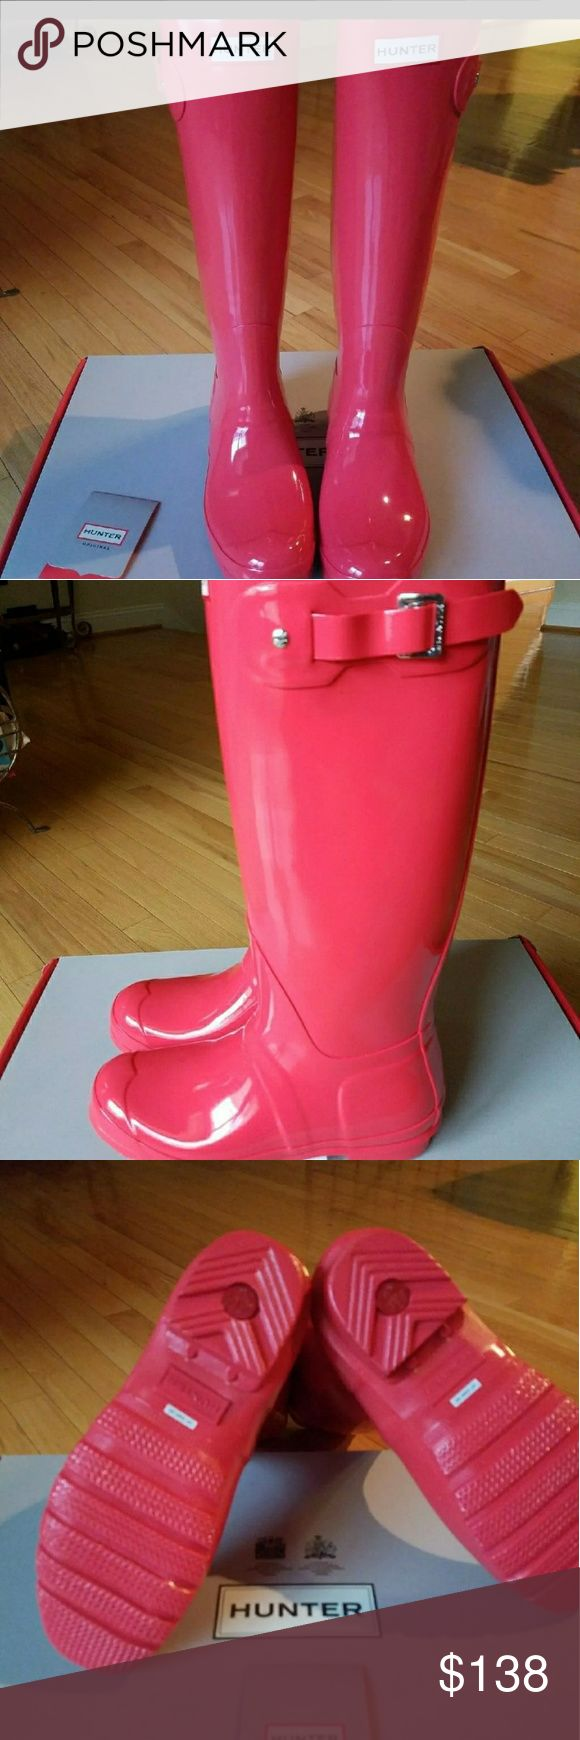 NEW! Hunter Coral Boots Sz 7 Brand New In Box! Hunter  Tall  Bright Coral Glossy  Rain Boots. Size 7**Price is Firm** Retail $160 Hunter Boots Shoes Winter & Rain Boots